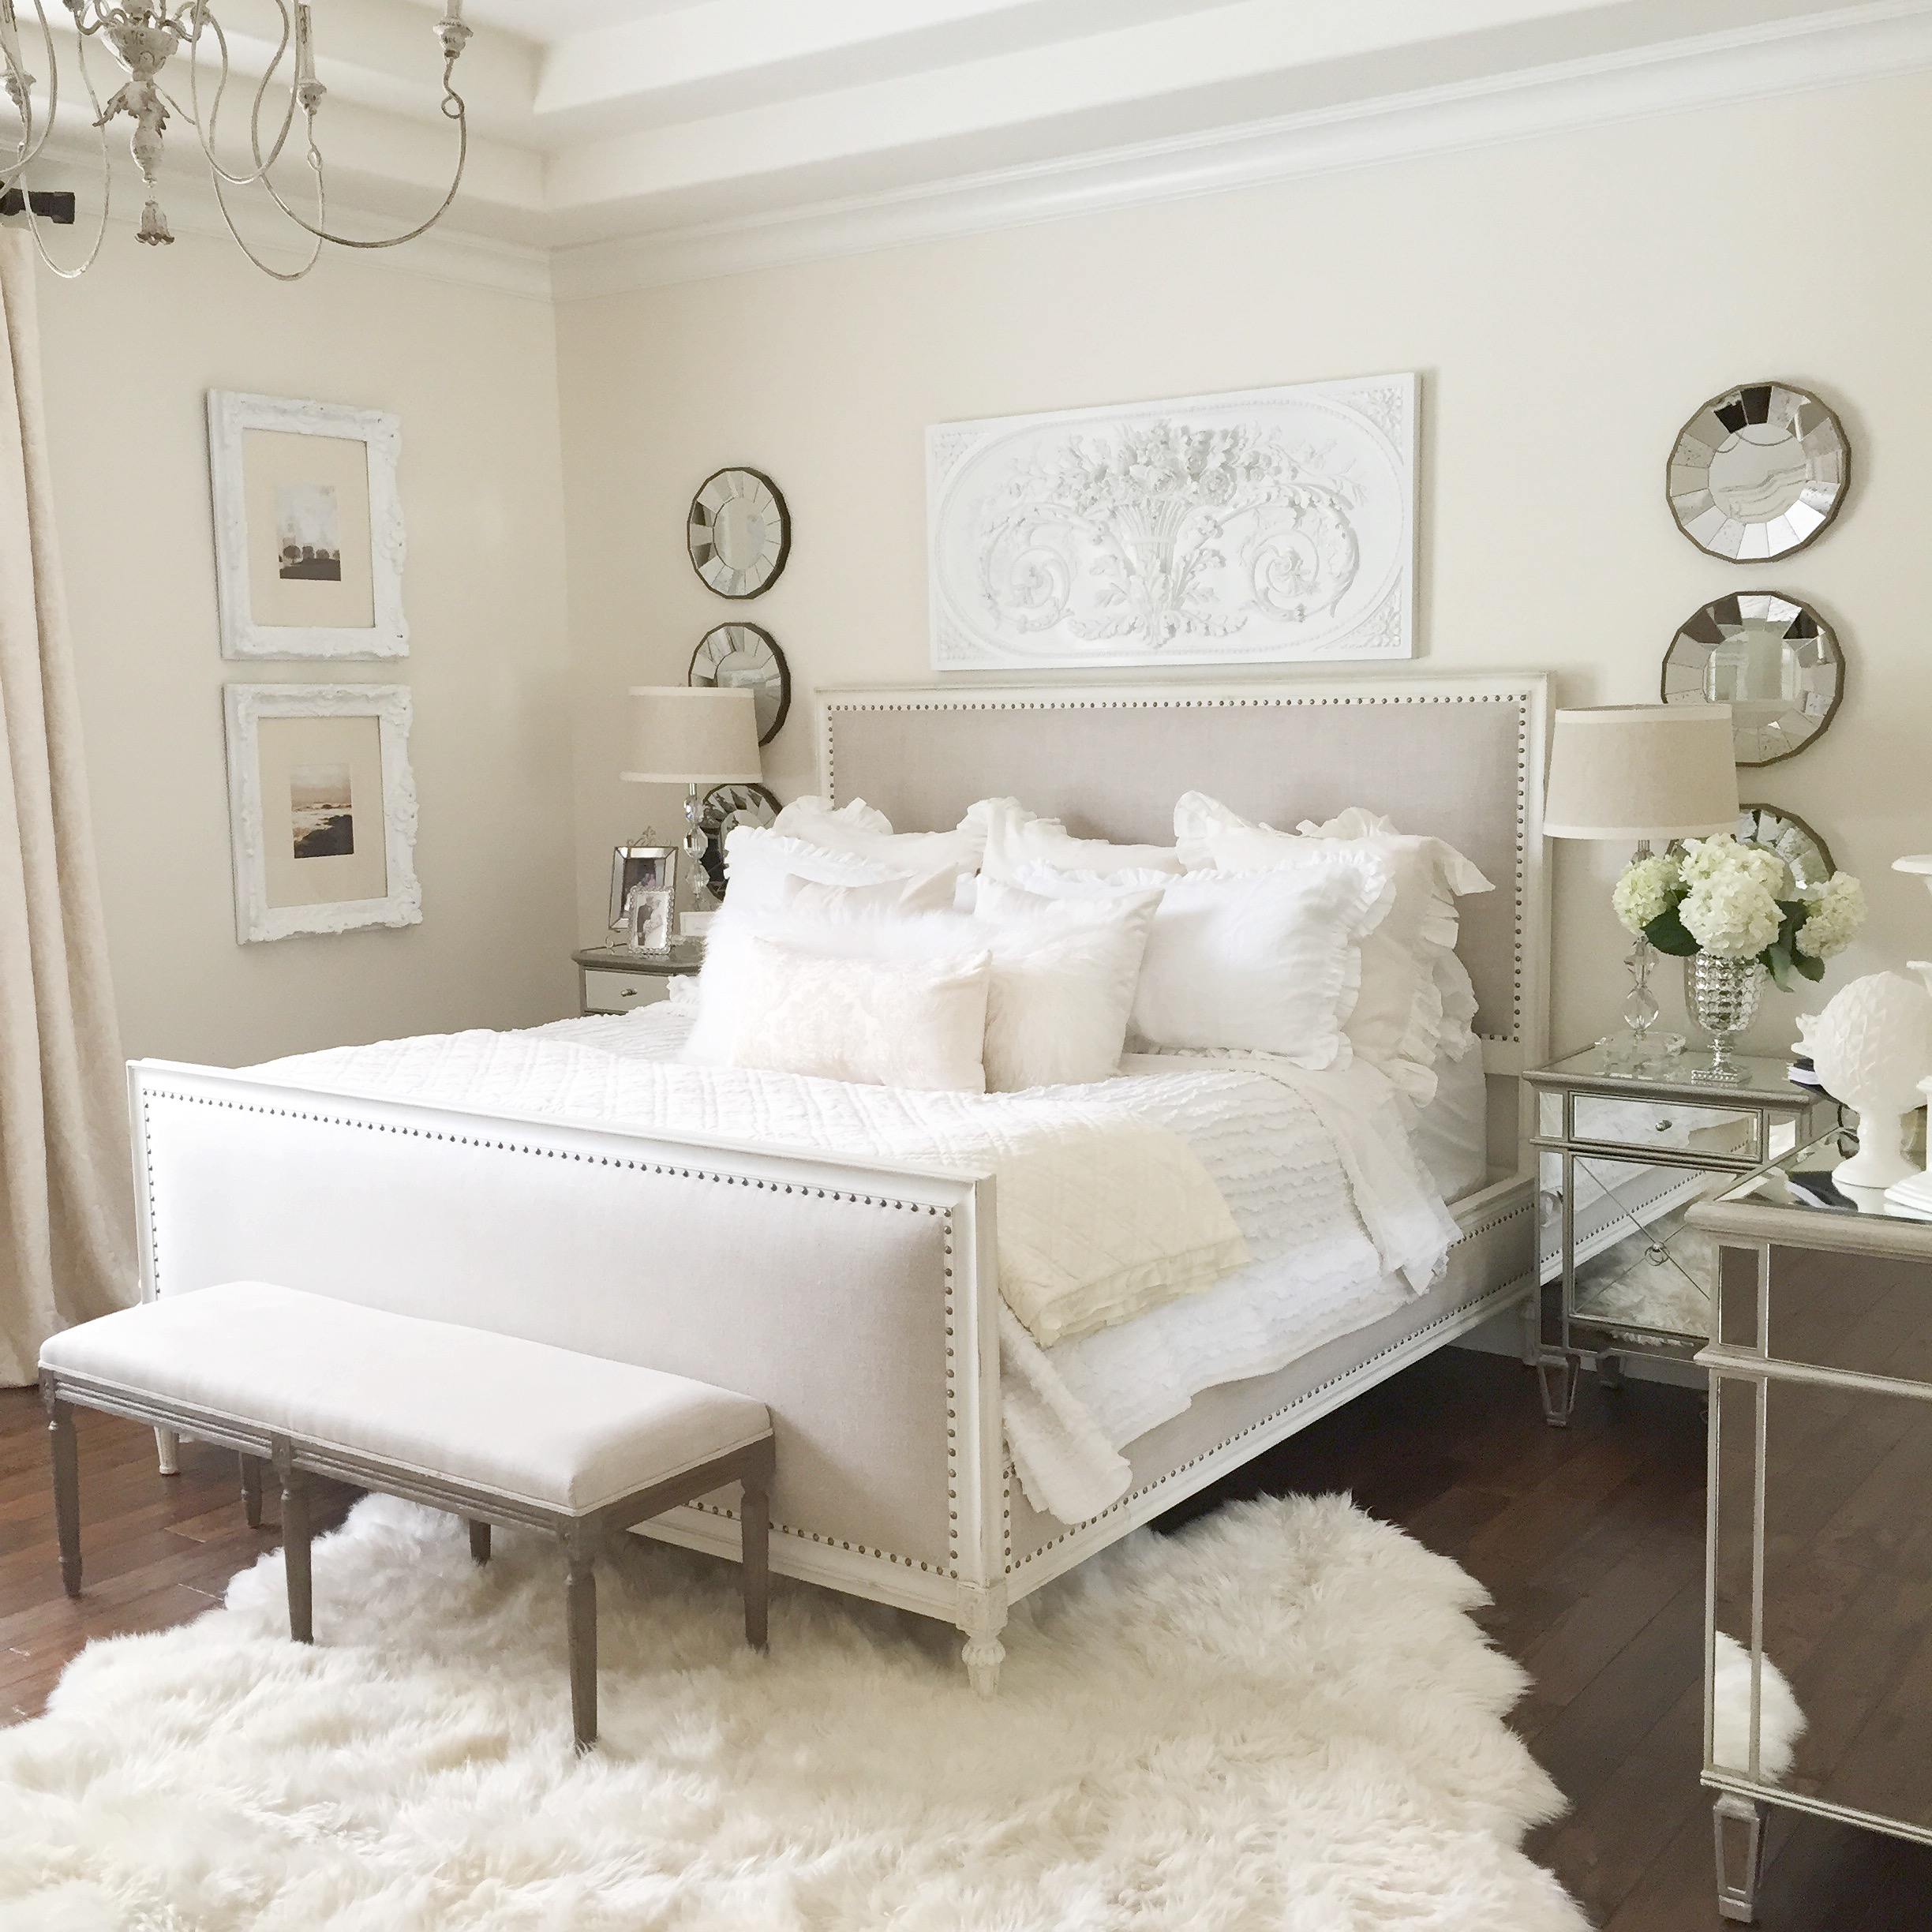 Mirrored Furniture Bedroom: Tips For You To Give Your Bedroom An Easy Makeover